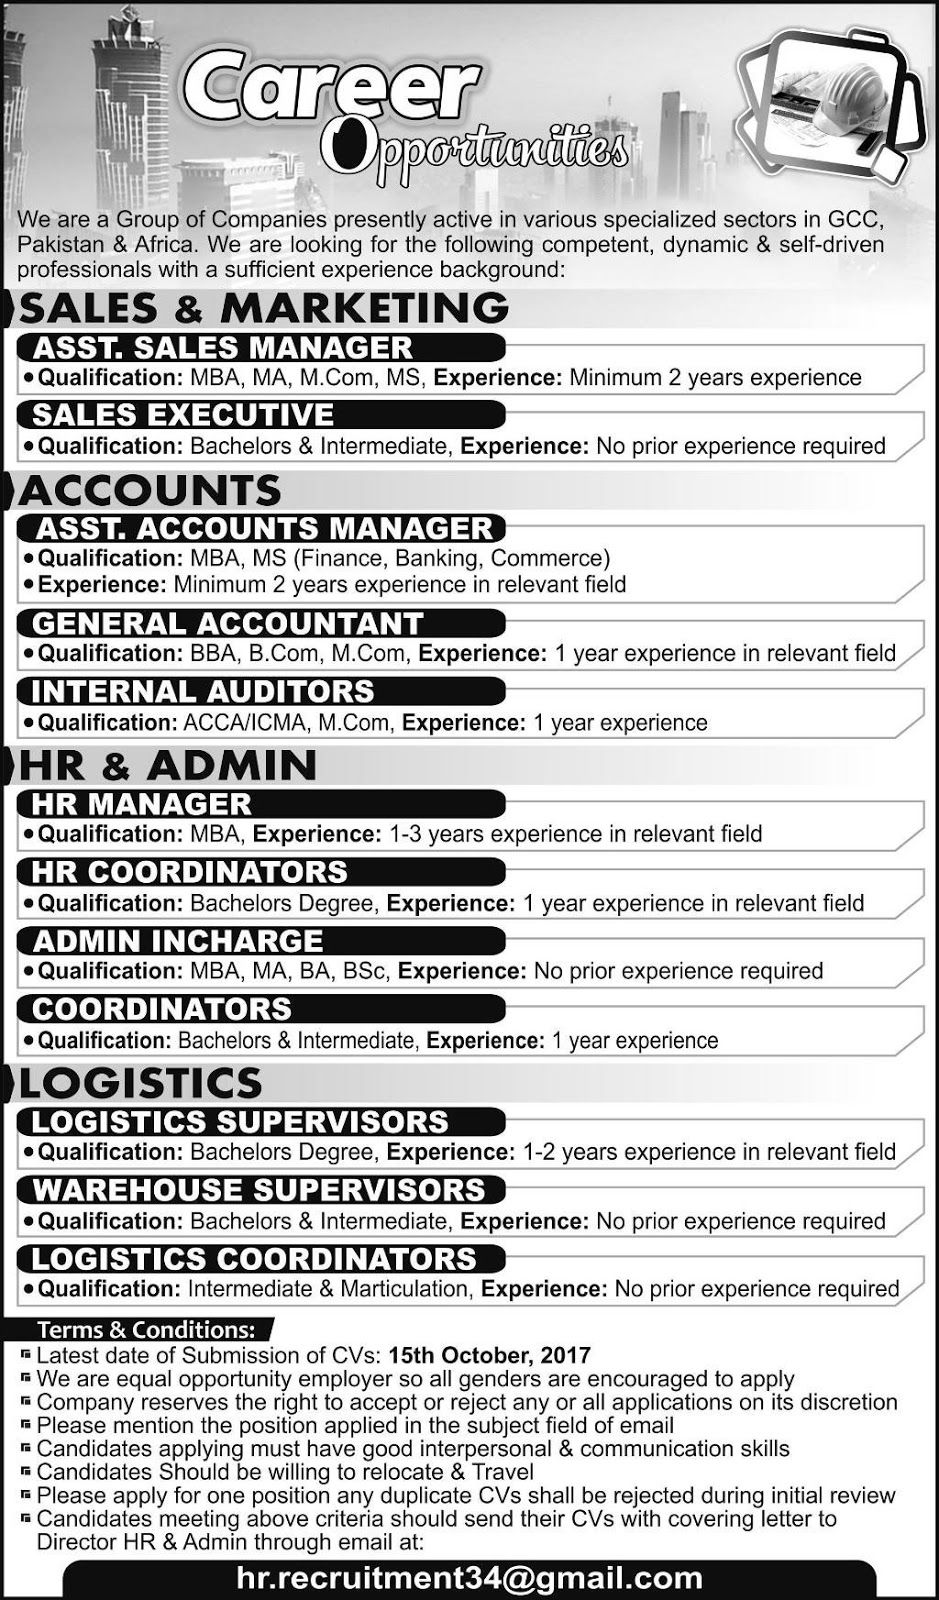 Jobs In Gcc Group Of Companies Pakistan And Africa Apply Via